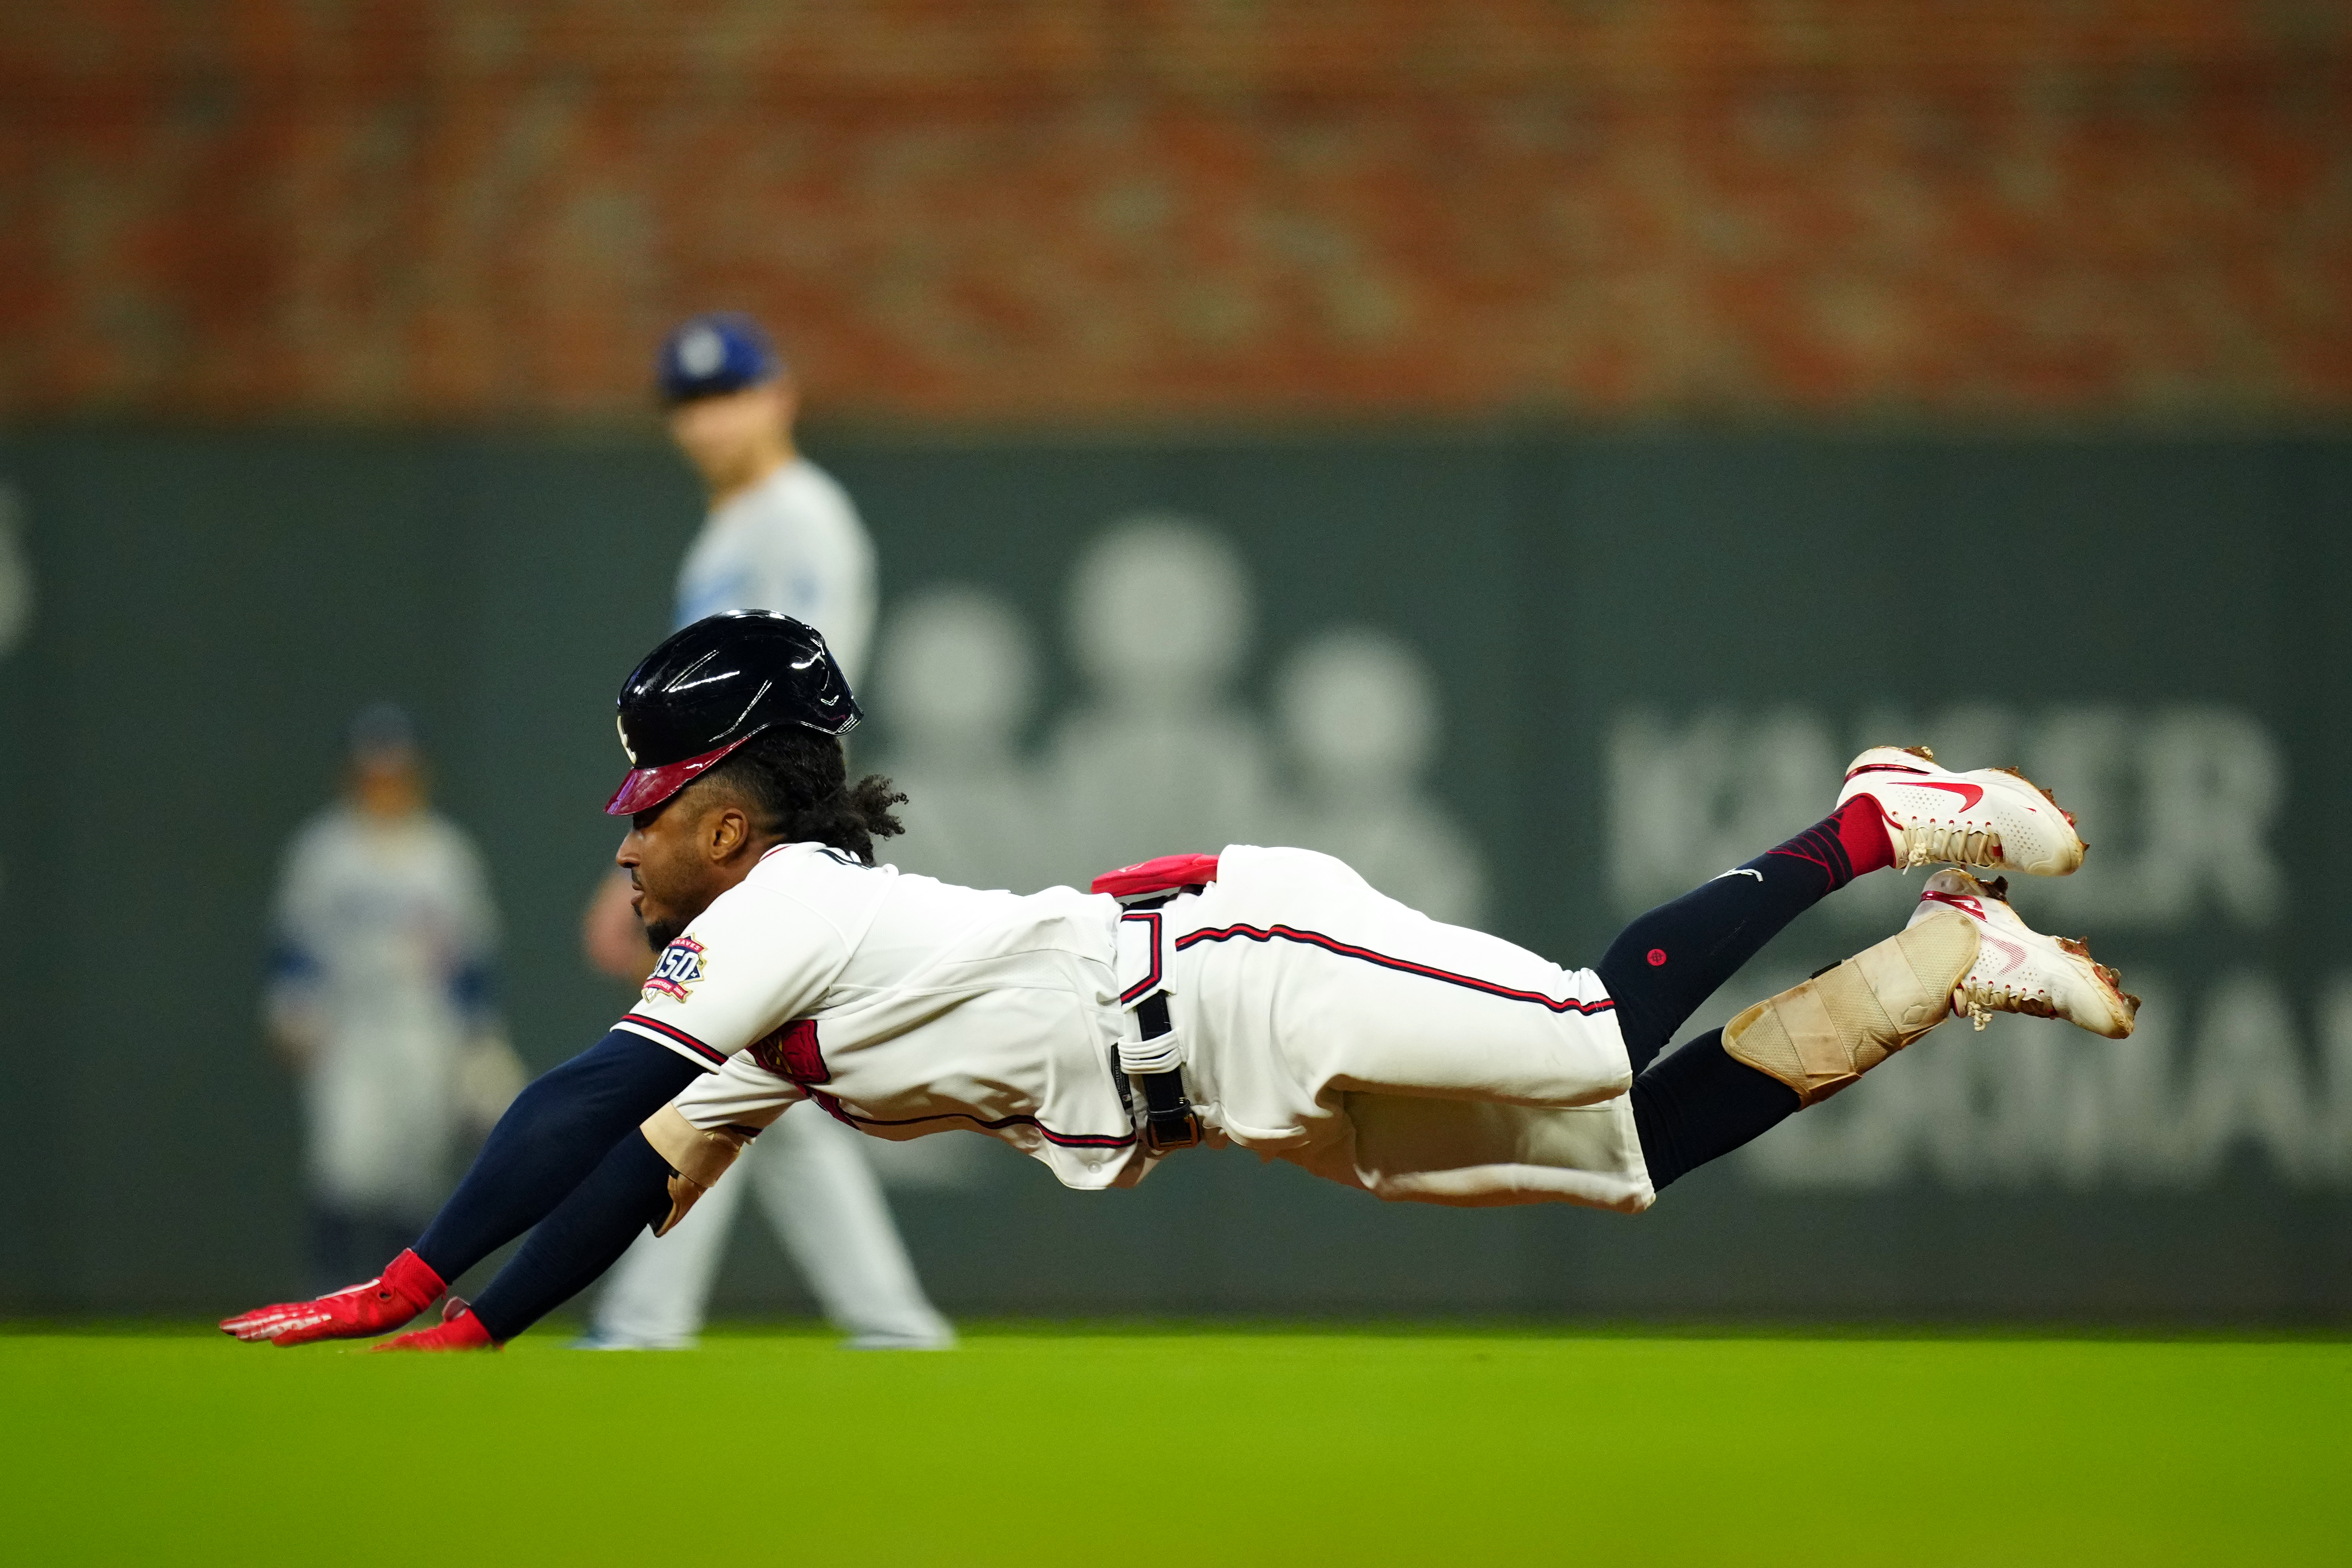 Ozzie Albies #1 of the Atlanta Braves slides safely into second base after hitting a double in the first inning of Game 6 of the NLCS between the Los Angeles Dodgers and the Atlanta Braves at Truist Park on Saturday, October 23, 2021 in Atlanta, Georgia.